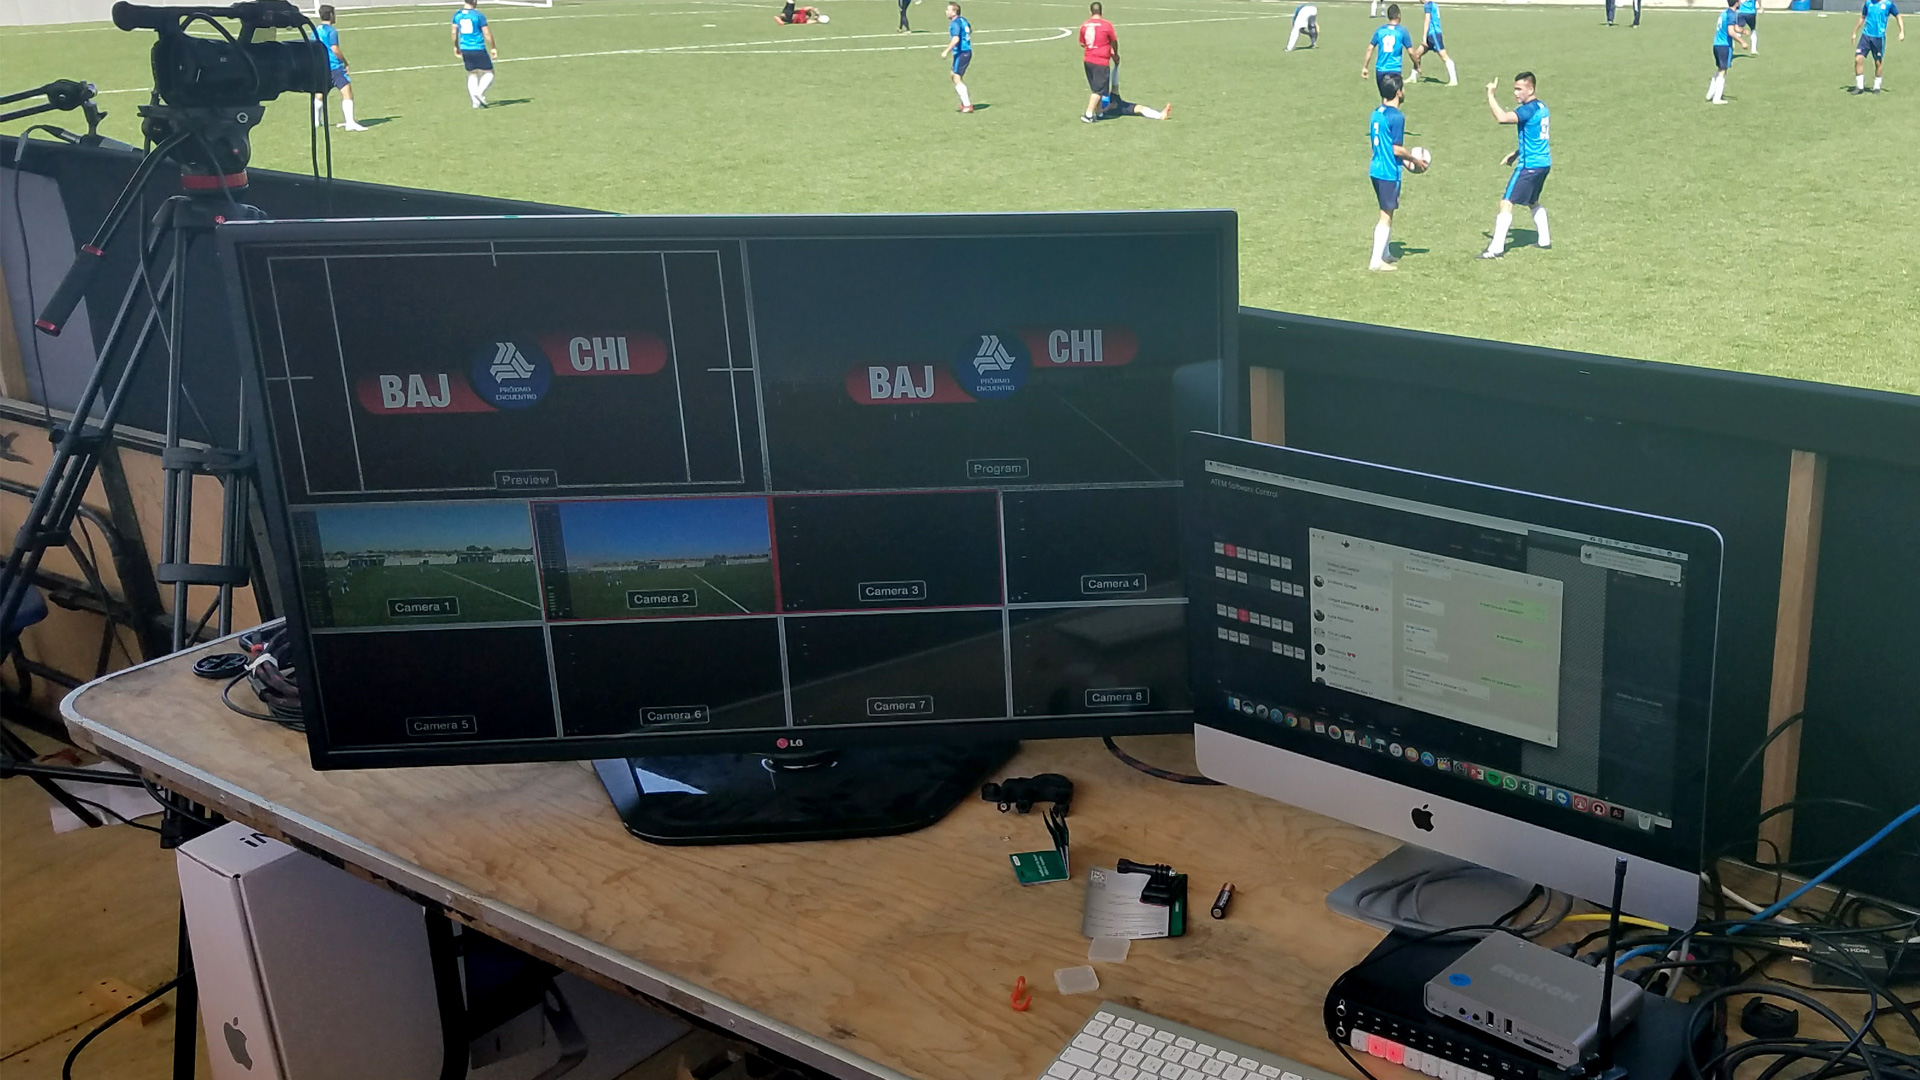 Monarch HD is ready to capture the game live from the soccer field.